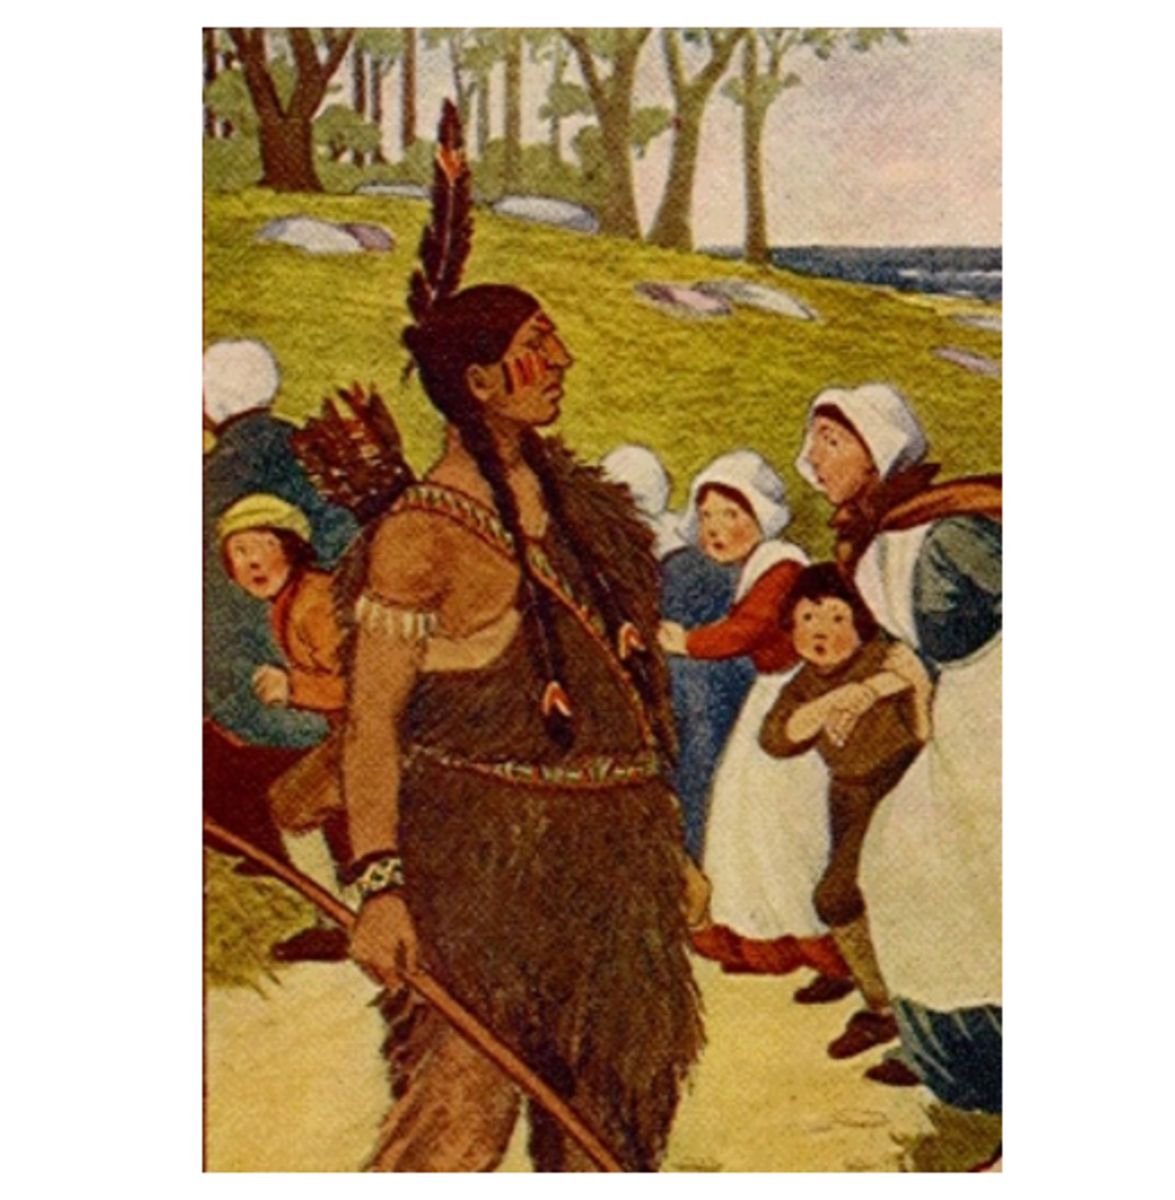 Plimoth Pilgrims Meet a Native American for the First Time